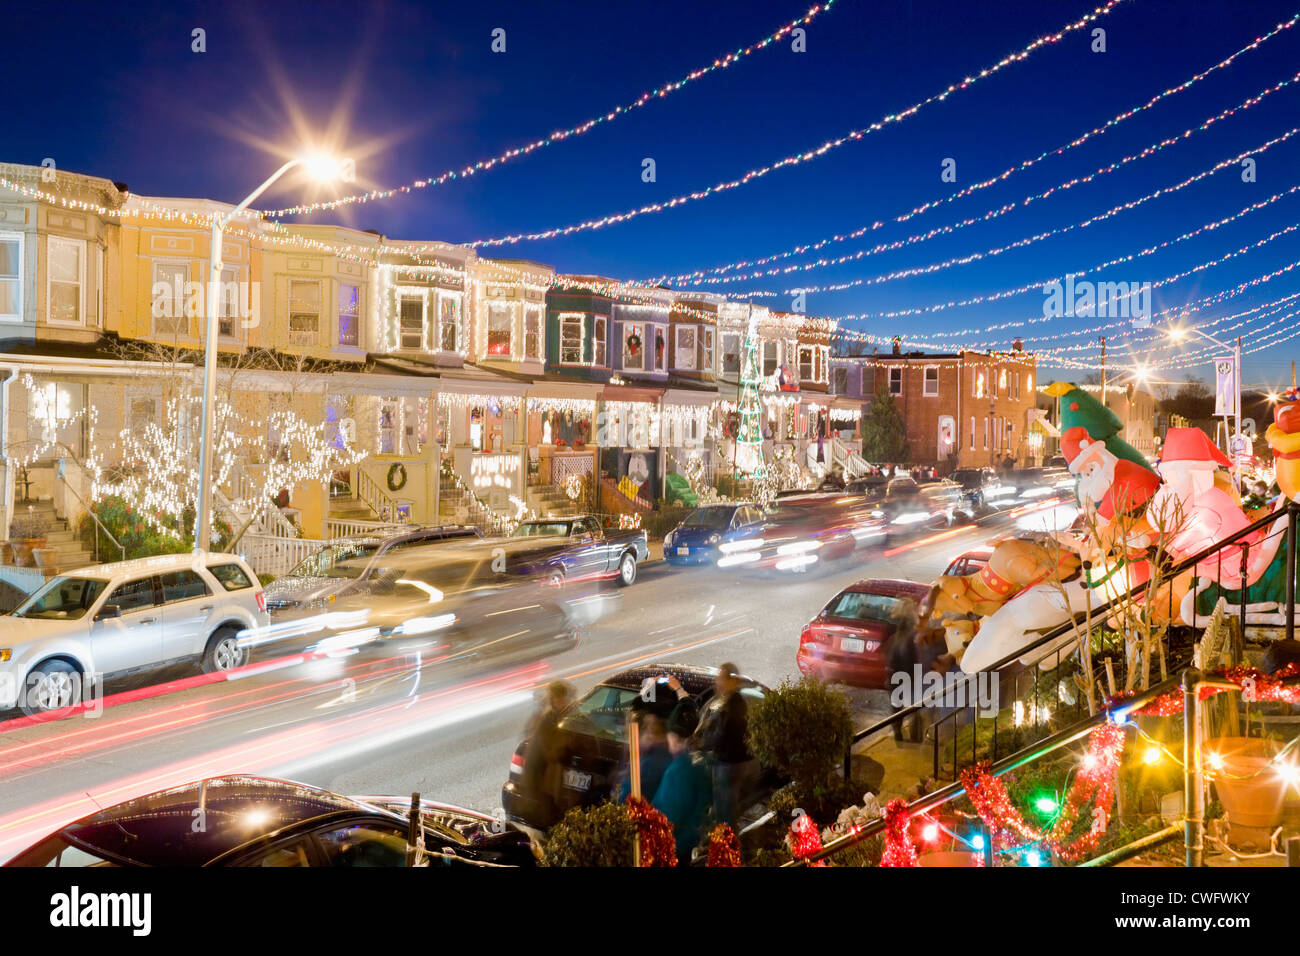 hampden neighborhood 36th street decorated for christmas baltimore maryland stock image - Christmas In Baltimore